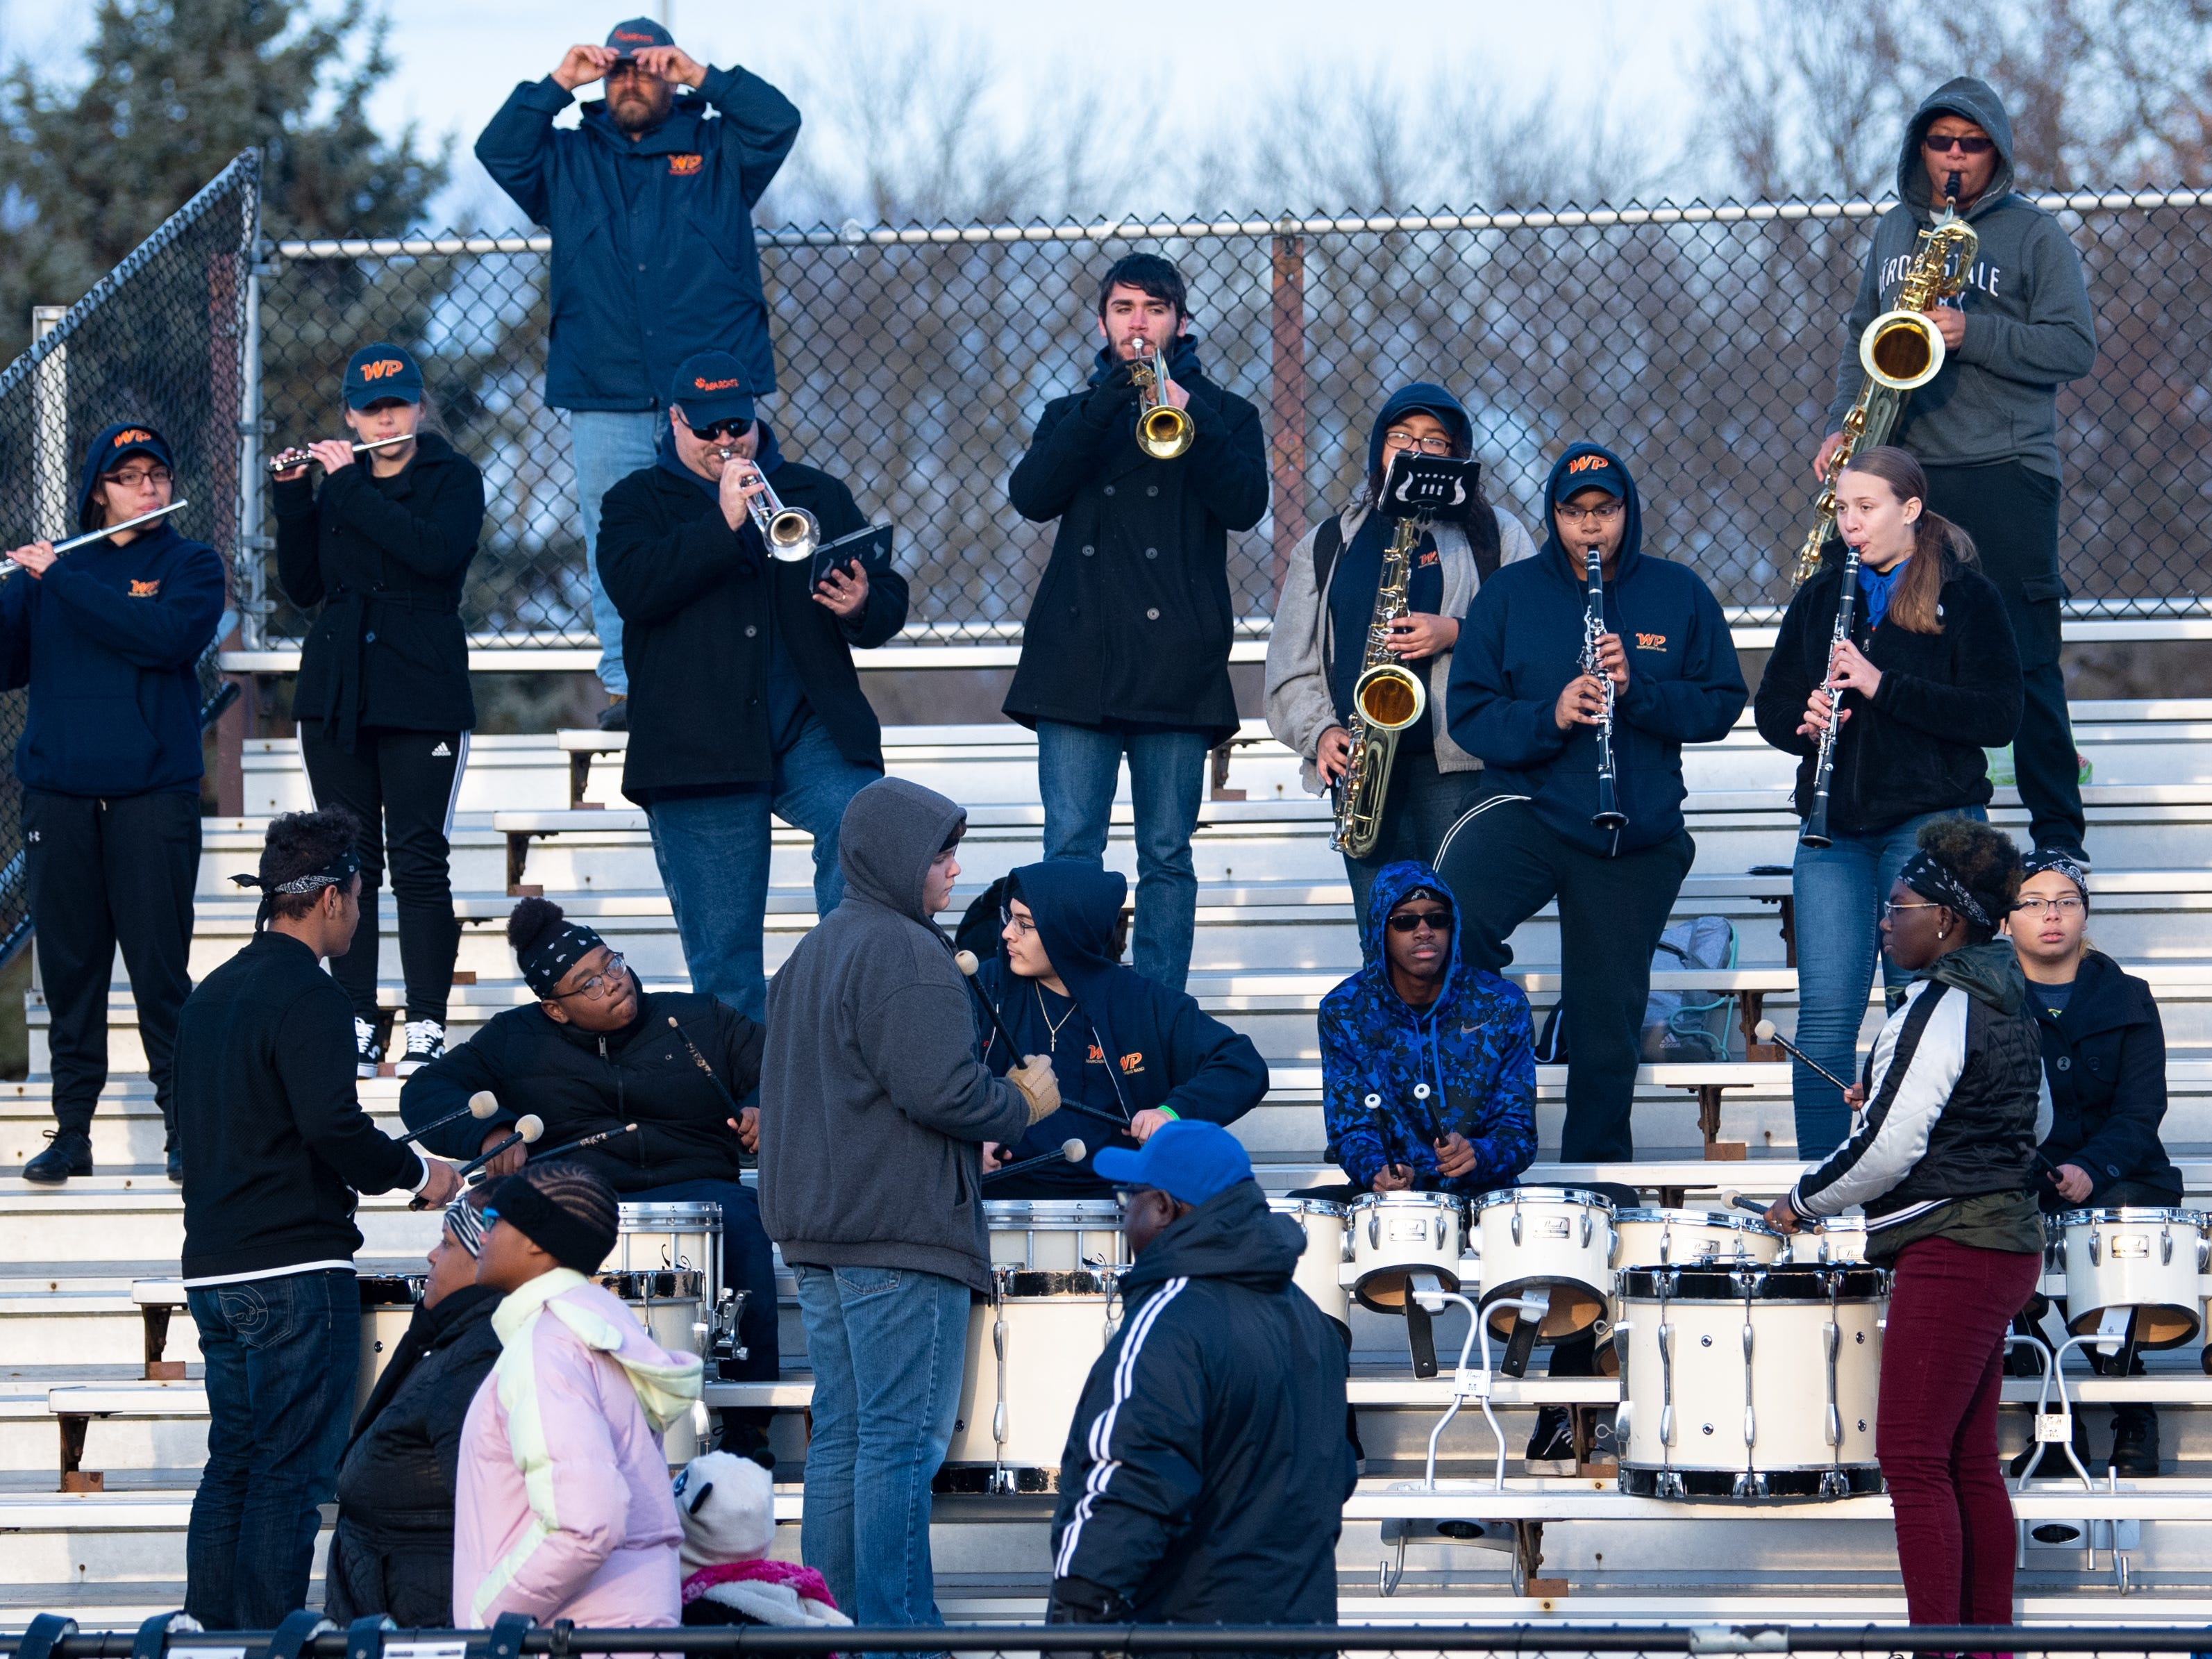 York High's band plays during the District 3 Class 5A football semifinal between York High and Cocalico at Manheim Central High School, November 17, 2018. The Eagles defeated the Bearcats 61 to 35.